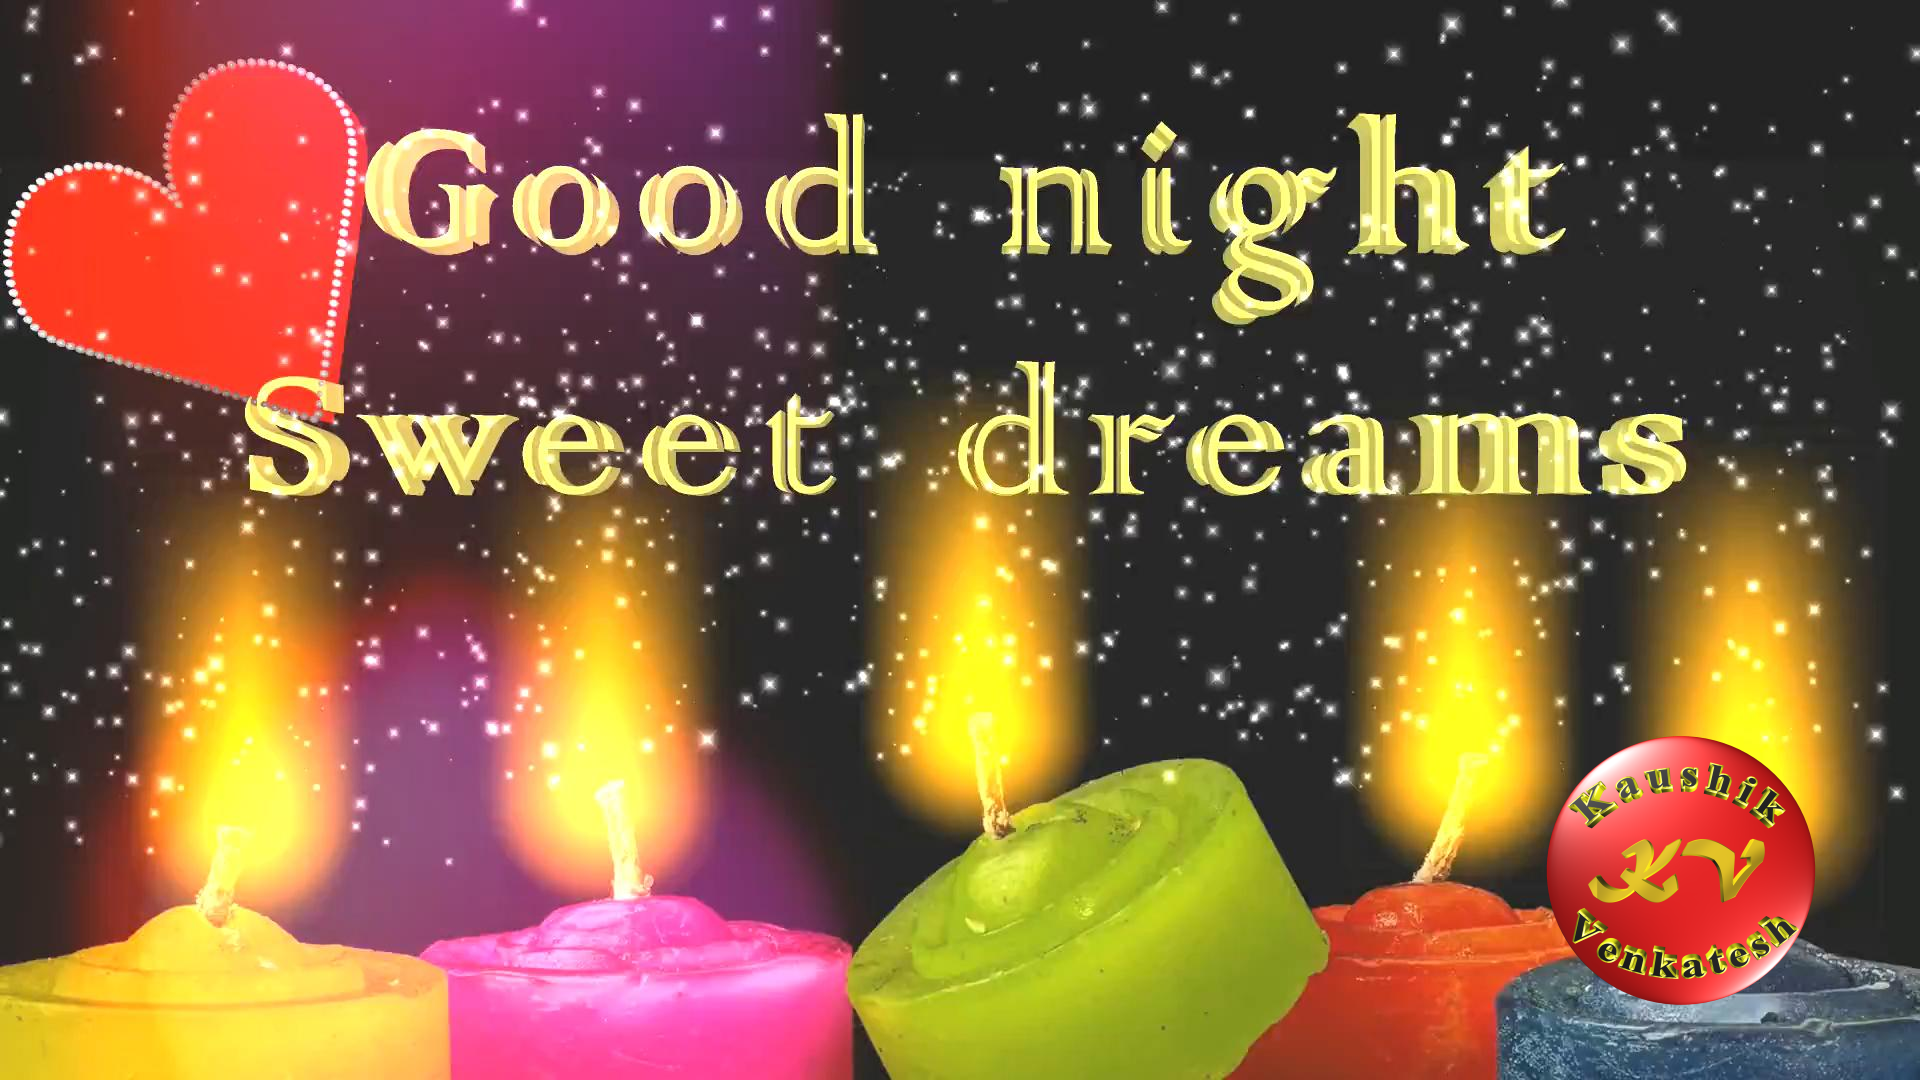 Greetings Image of Good Night Wishes Video